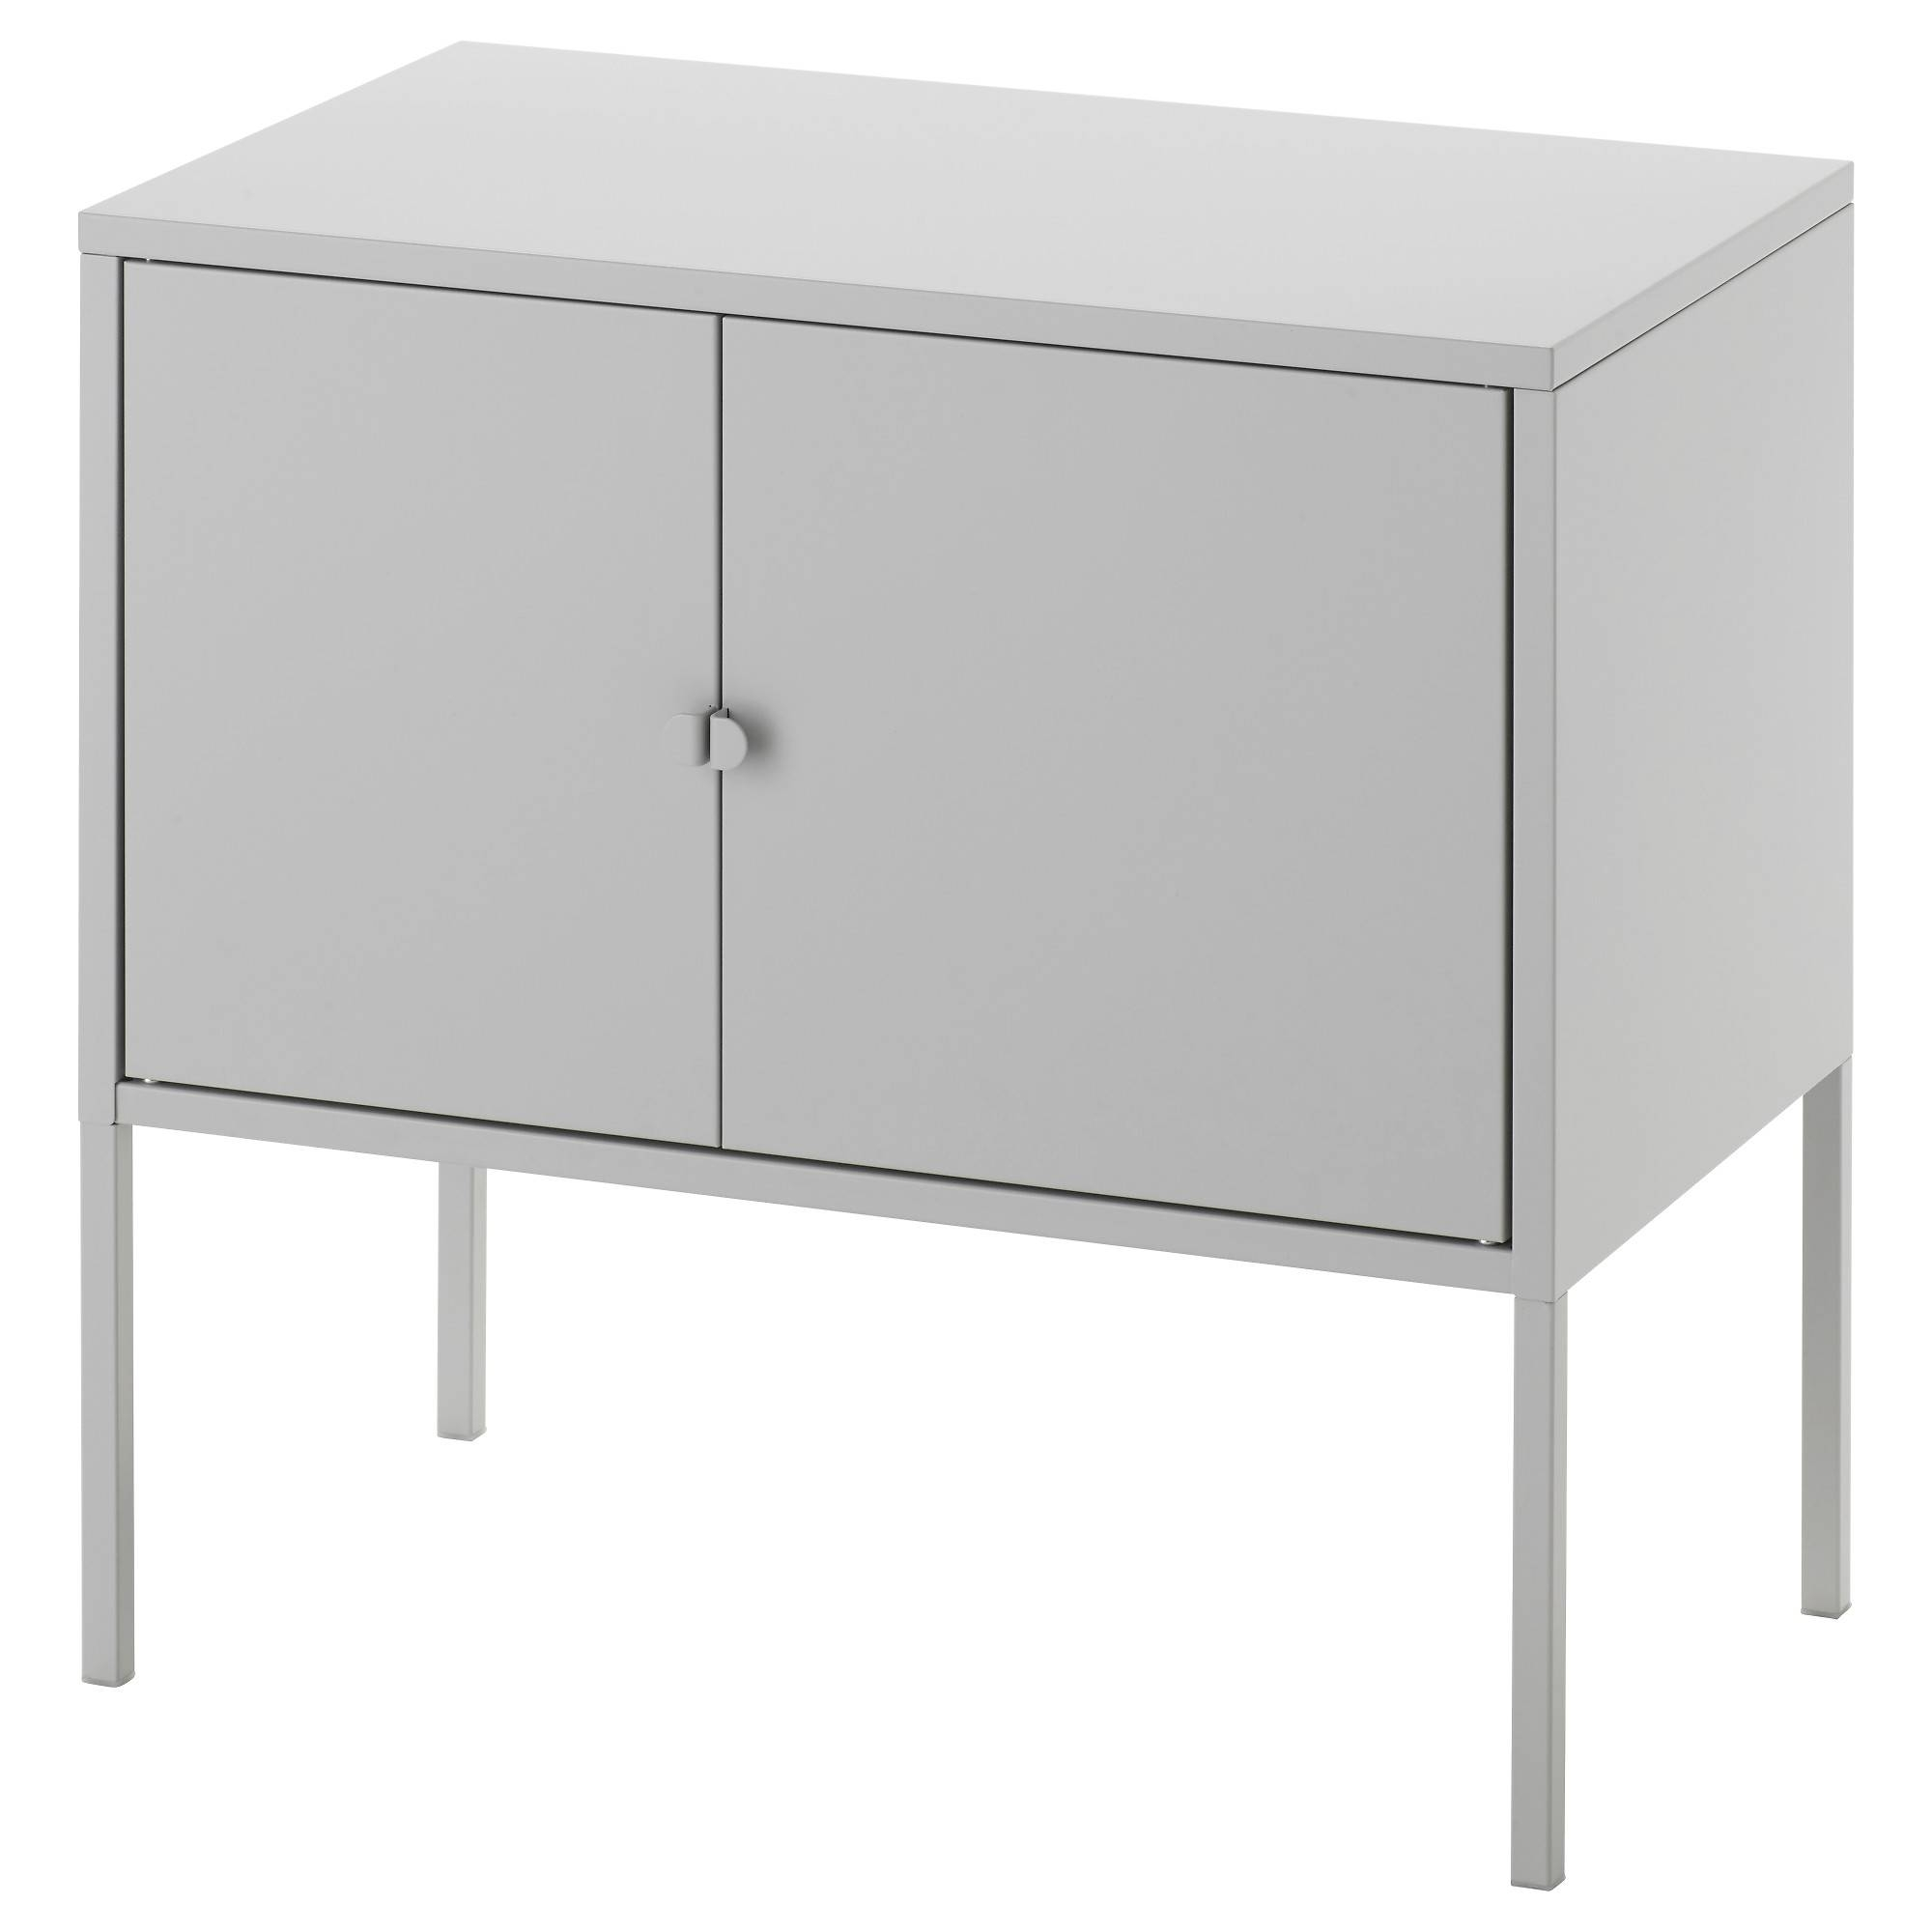 Cabinets & Sideboards – Ikea With White Sideboard Cabinet (View 4 of 20)